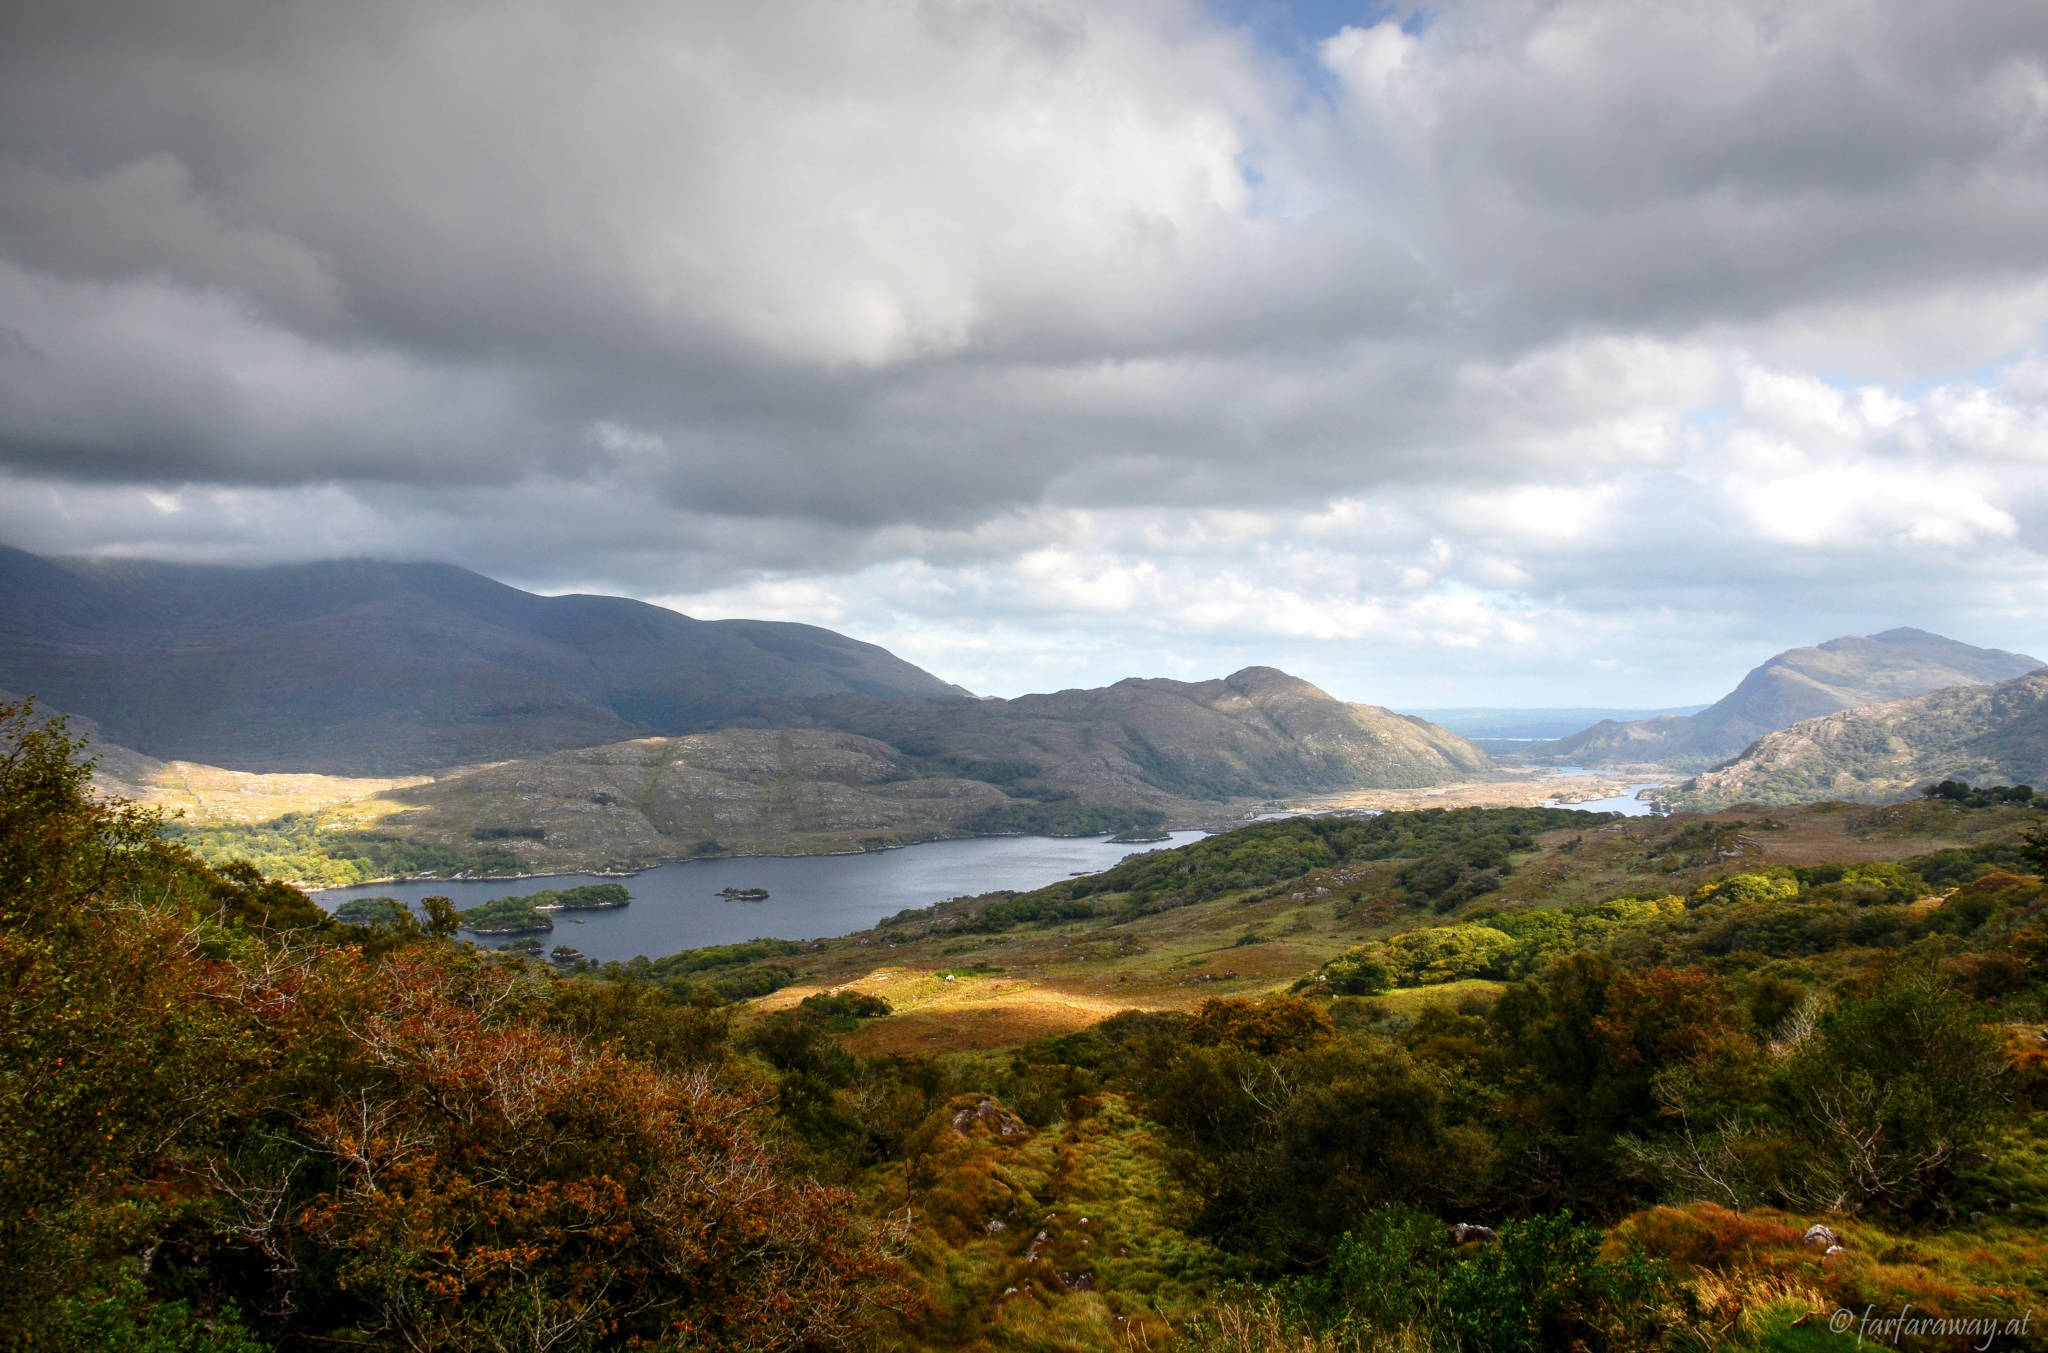 View from Ladys View to the Upper Lake, Killarney Nationalpark